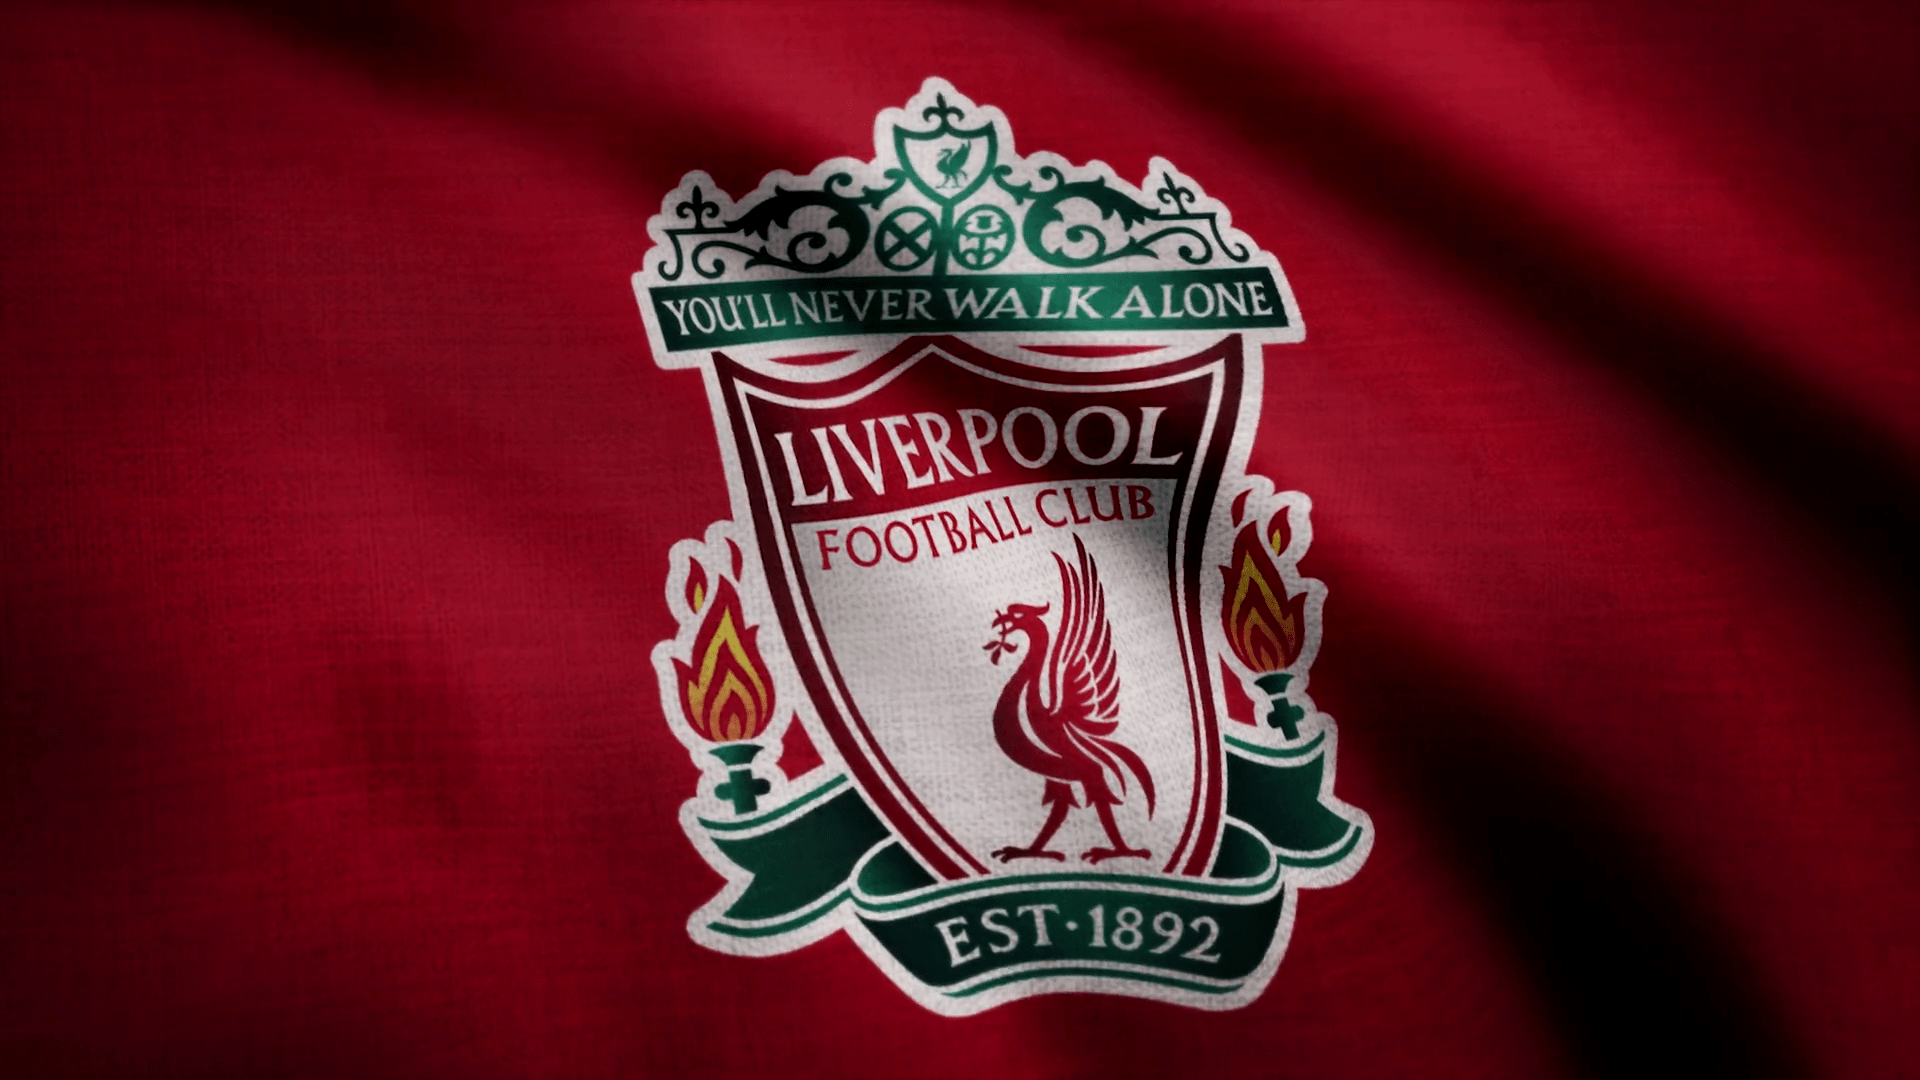 liverpool - Transfer: Liverpool beat four clubs to sign EPL record-breaking midfielder